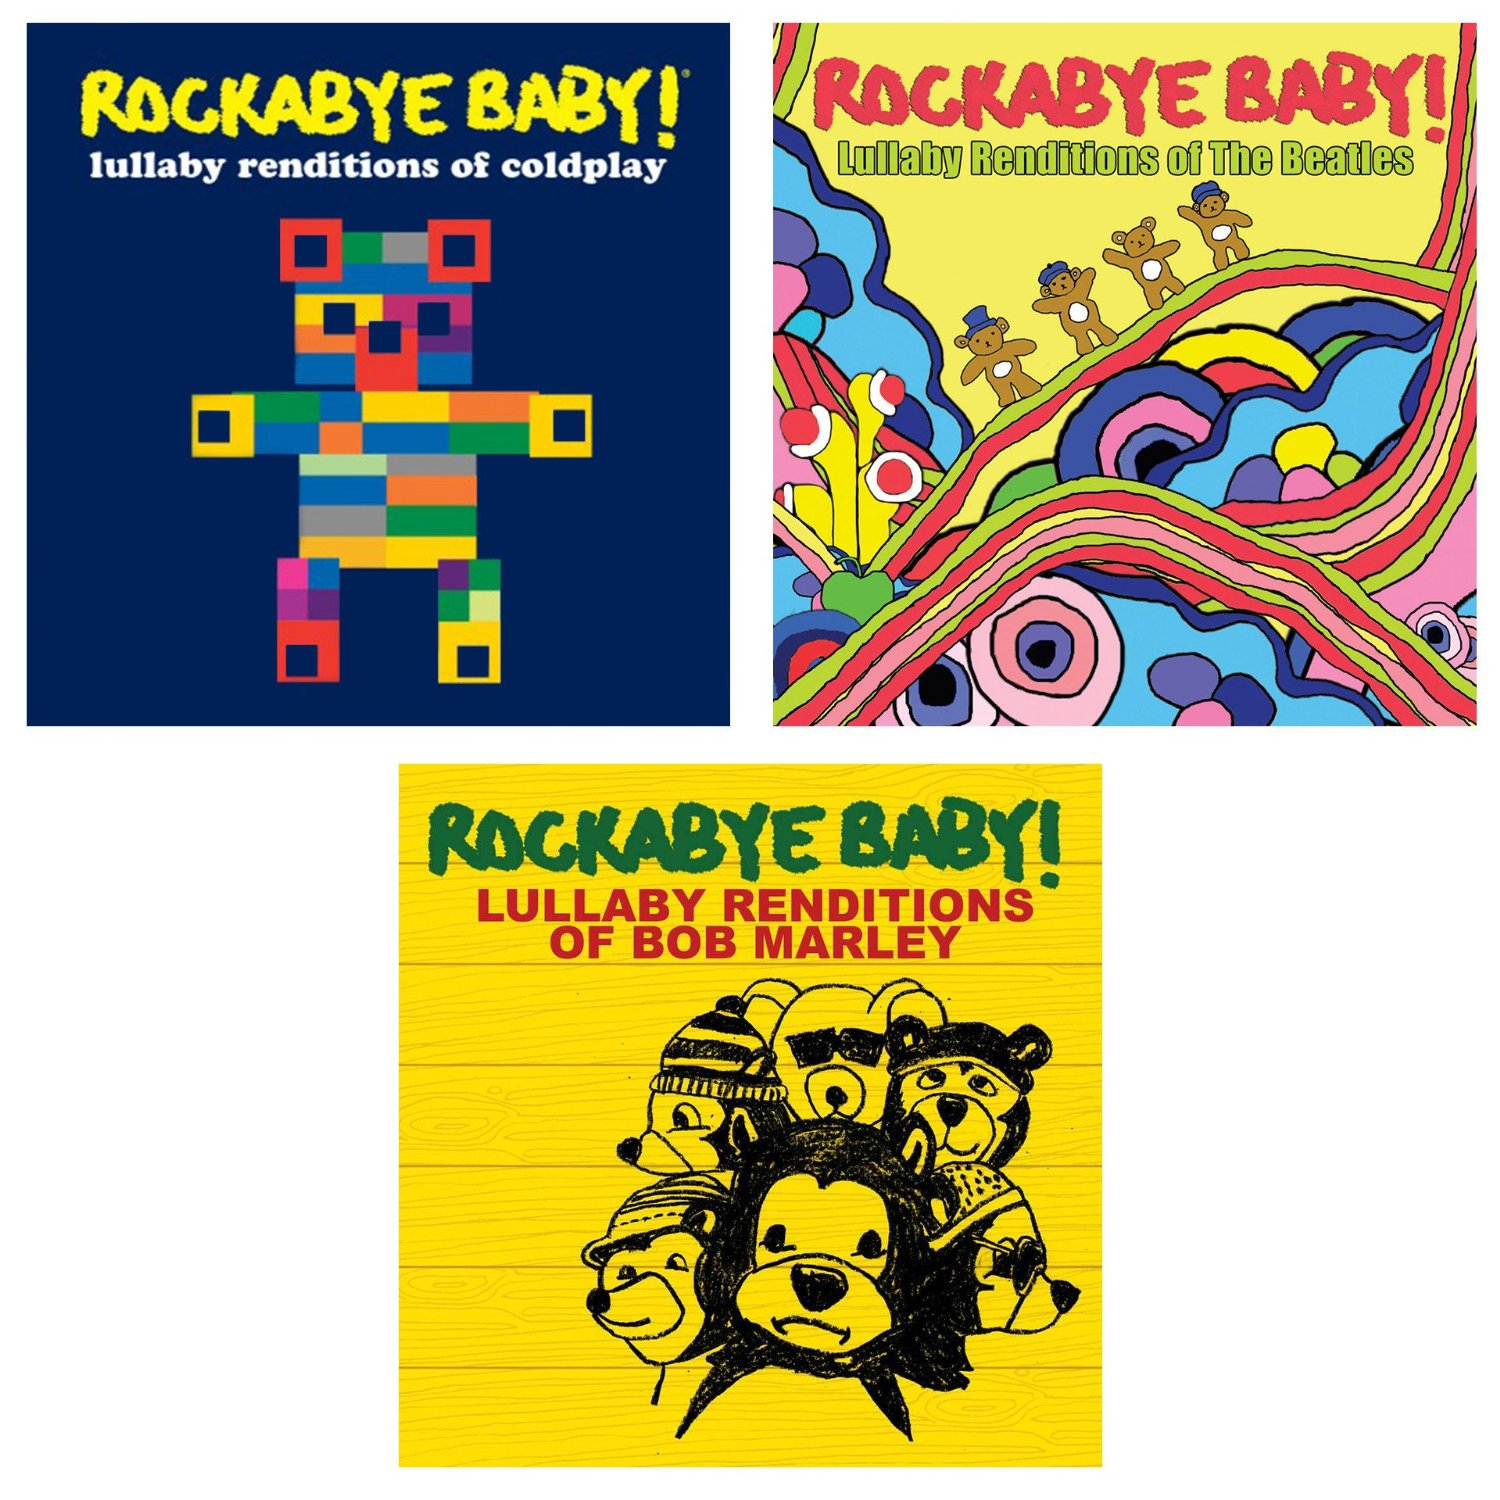 Rockabye Baby Lullaby Renditions 3 CD Set, Coldplay/Beatles/Bob Marley